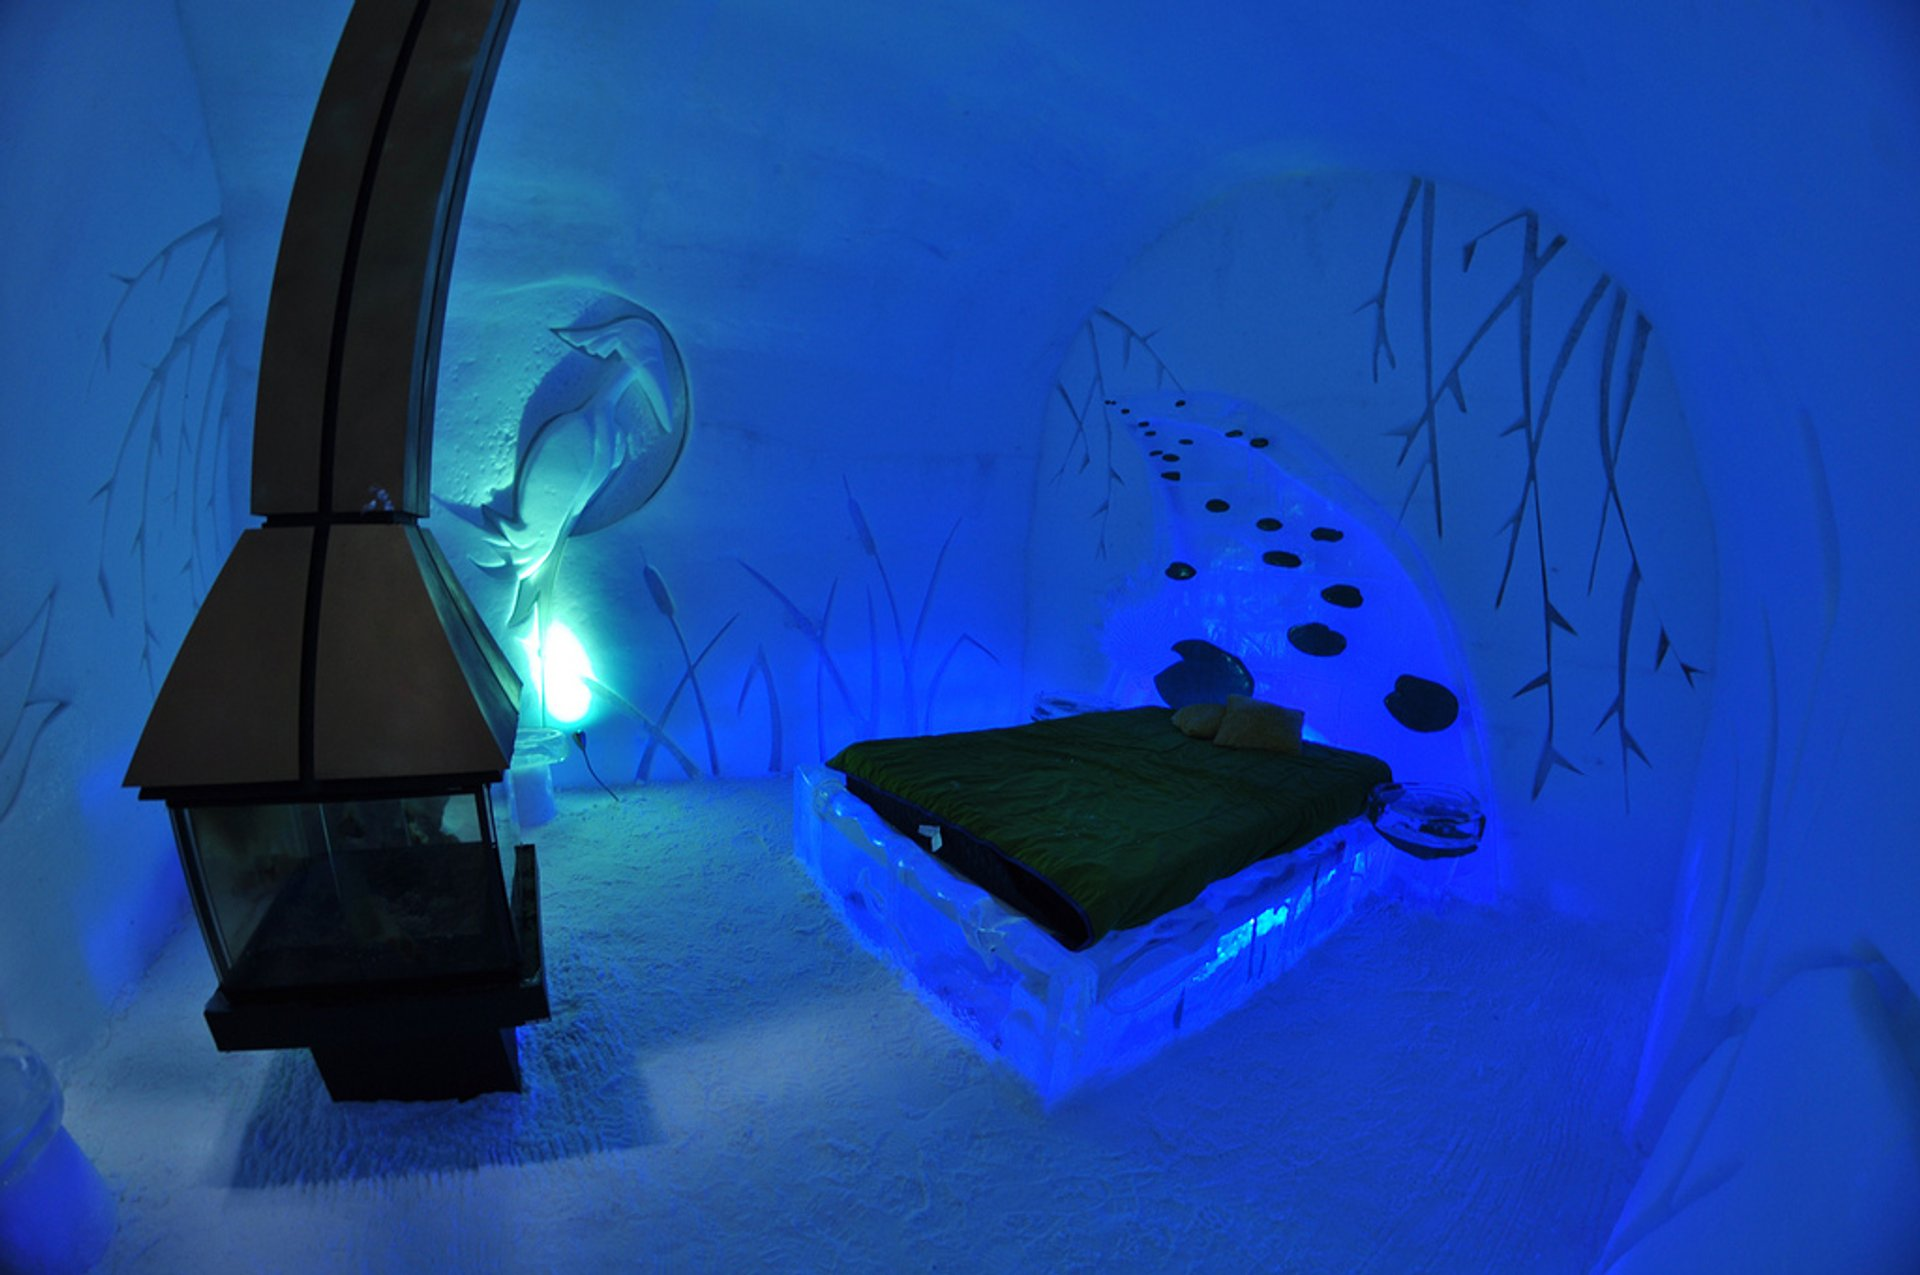 Hôtel de Glace (Ice Hotel) in Quebec - Best Season 2020